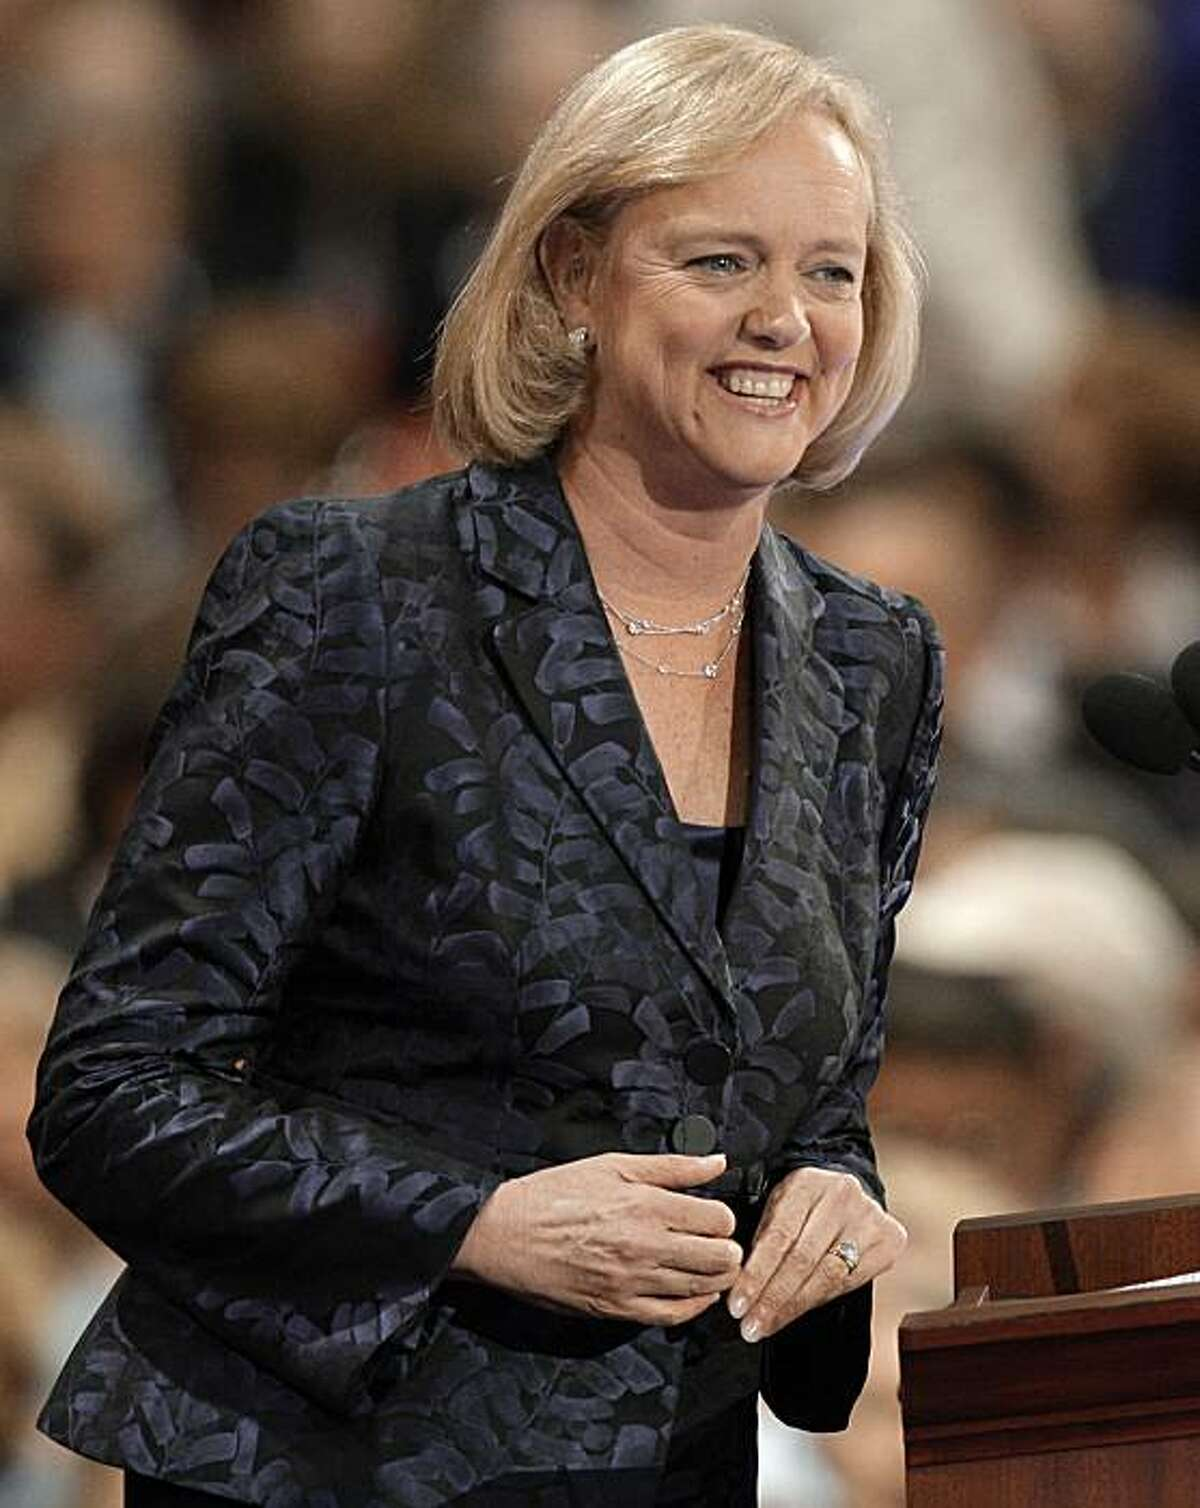 **FILE** In this Sept. 3, 2008 file photo, Meg Whitman, national co-chair for McCain 2008 and former president and CEO of eBay, speaks at the Republican National Convention in St. Paul, Minn. Capping a year long tour on the political stage, Whitman takes the first official step in her bid to seek the Republican nomination for California governor. (AP Photo/Paul Sancya, File)